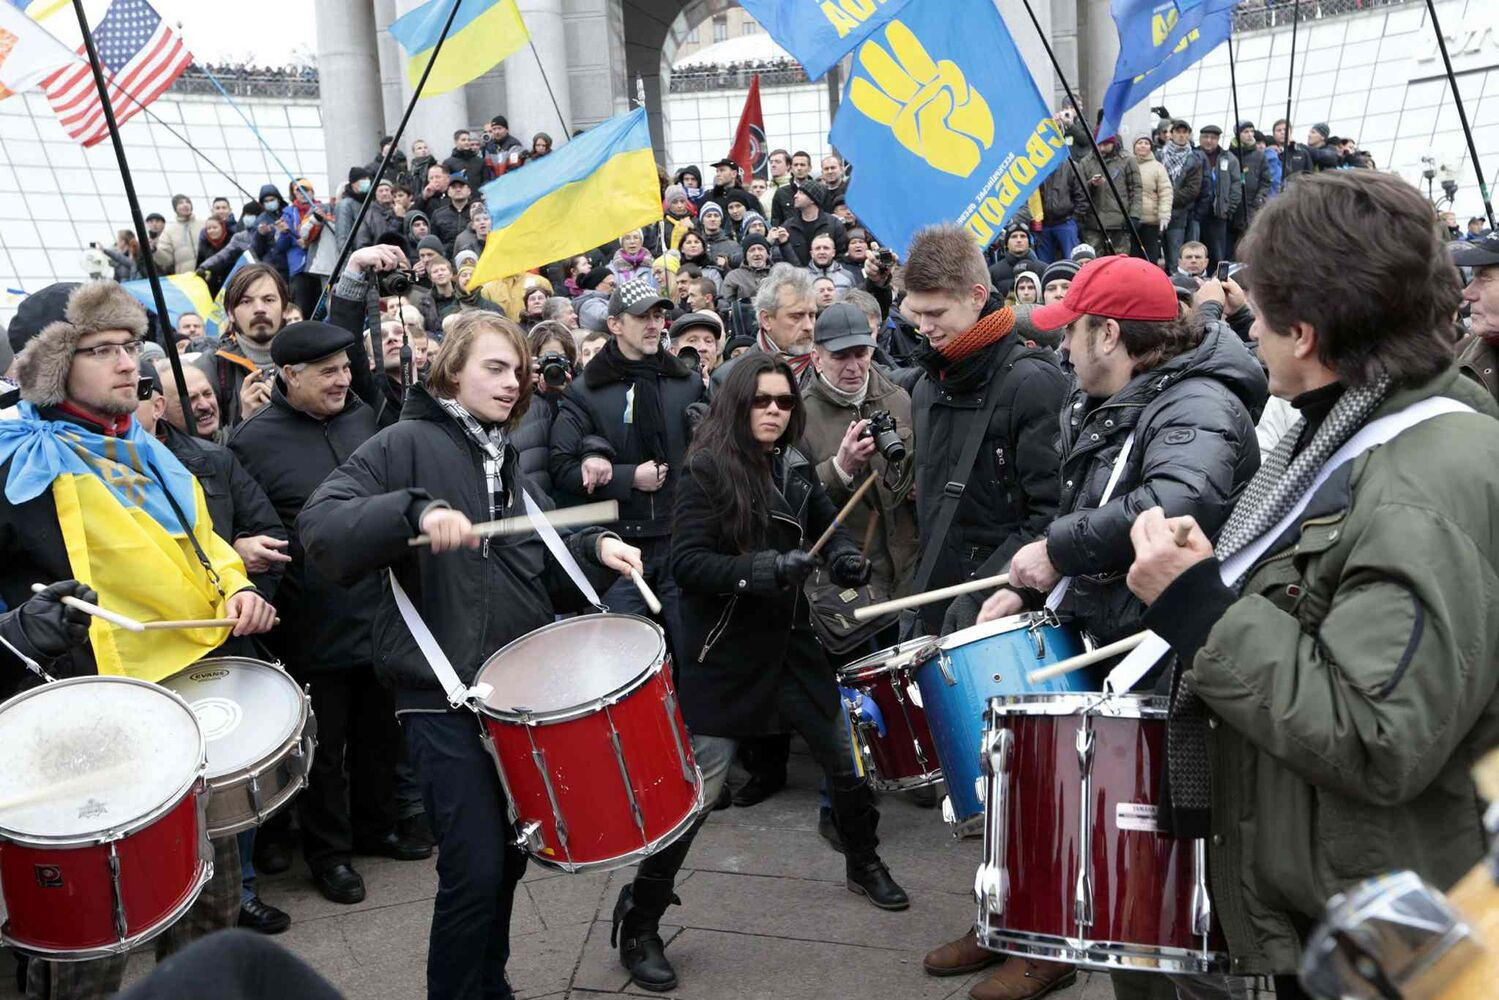 Demonstrators dance and play drums during a rally in downtown Kiev, Ukraine, on Sunday. As many as 100,000 demonstrators chased away police to rally in the center of Ukraine's capital on Sunday, defying a government ban on protests on Independence Square, in the biggest show of anger over the president's refusal to sign an agreement with the European Union.